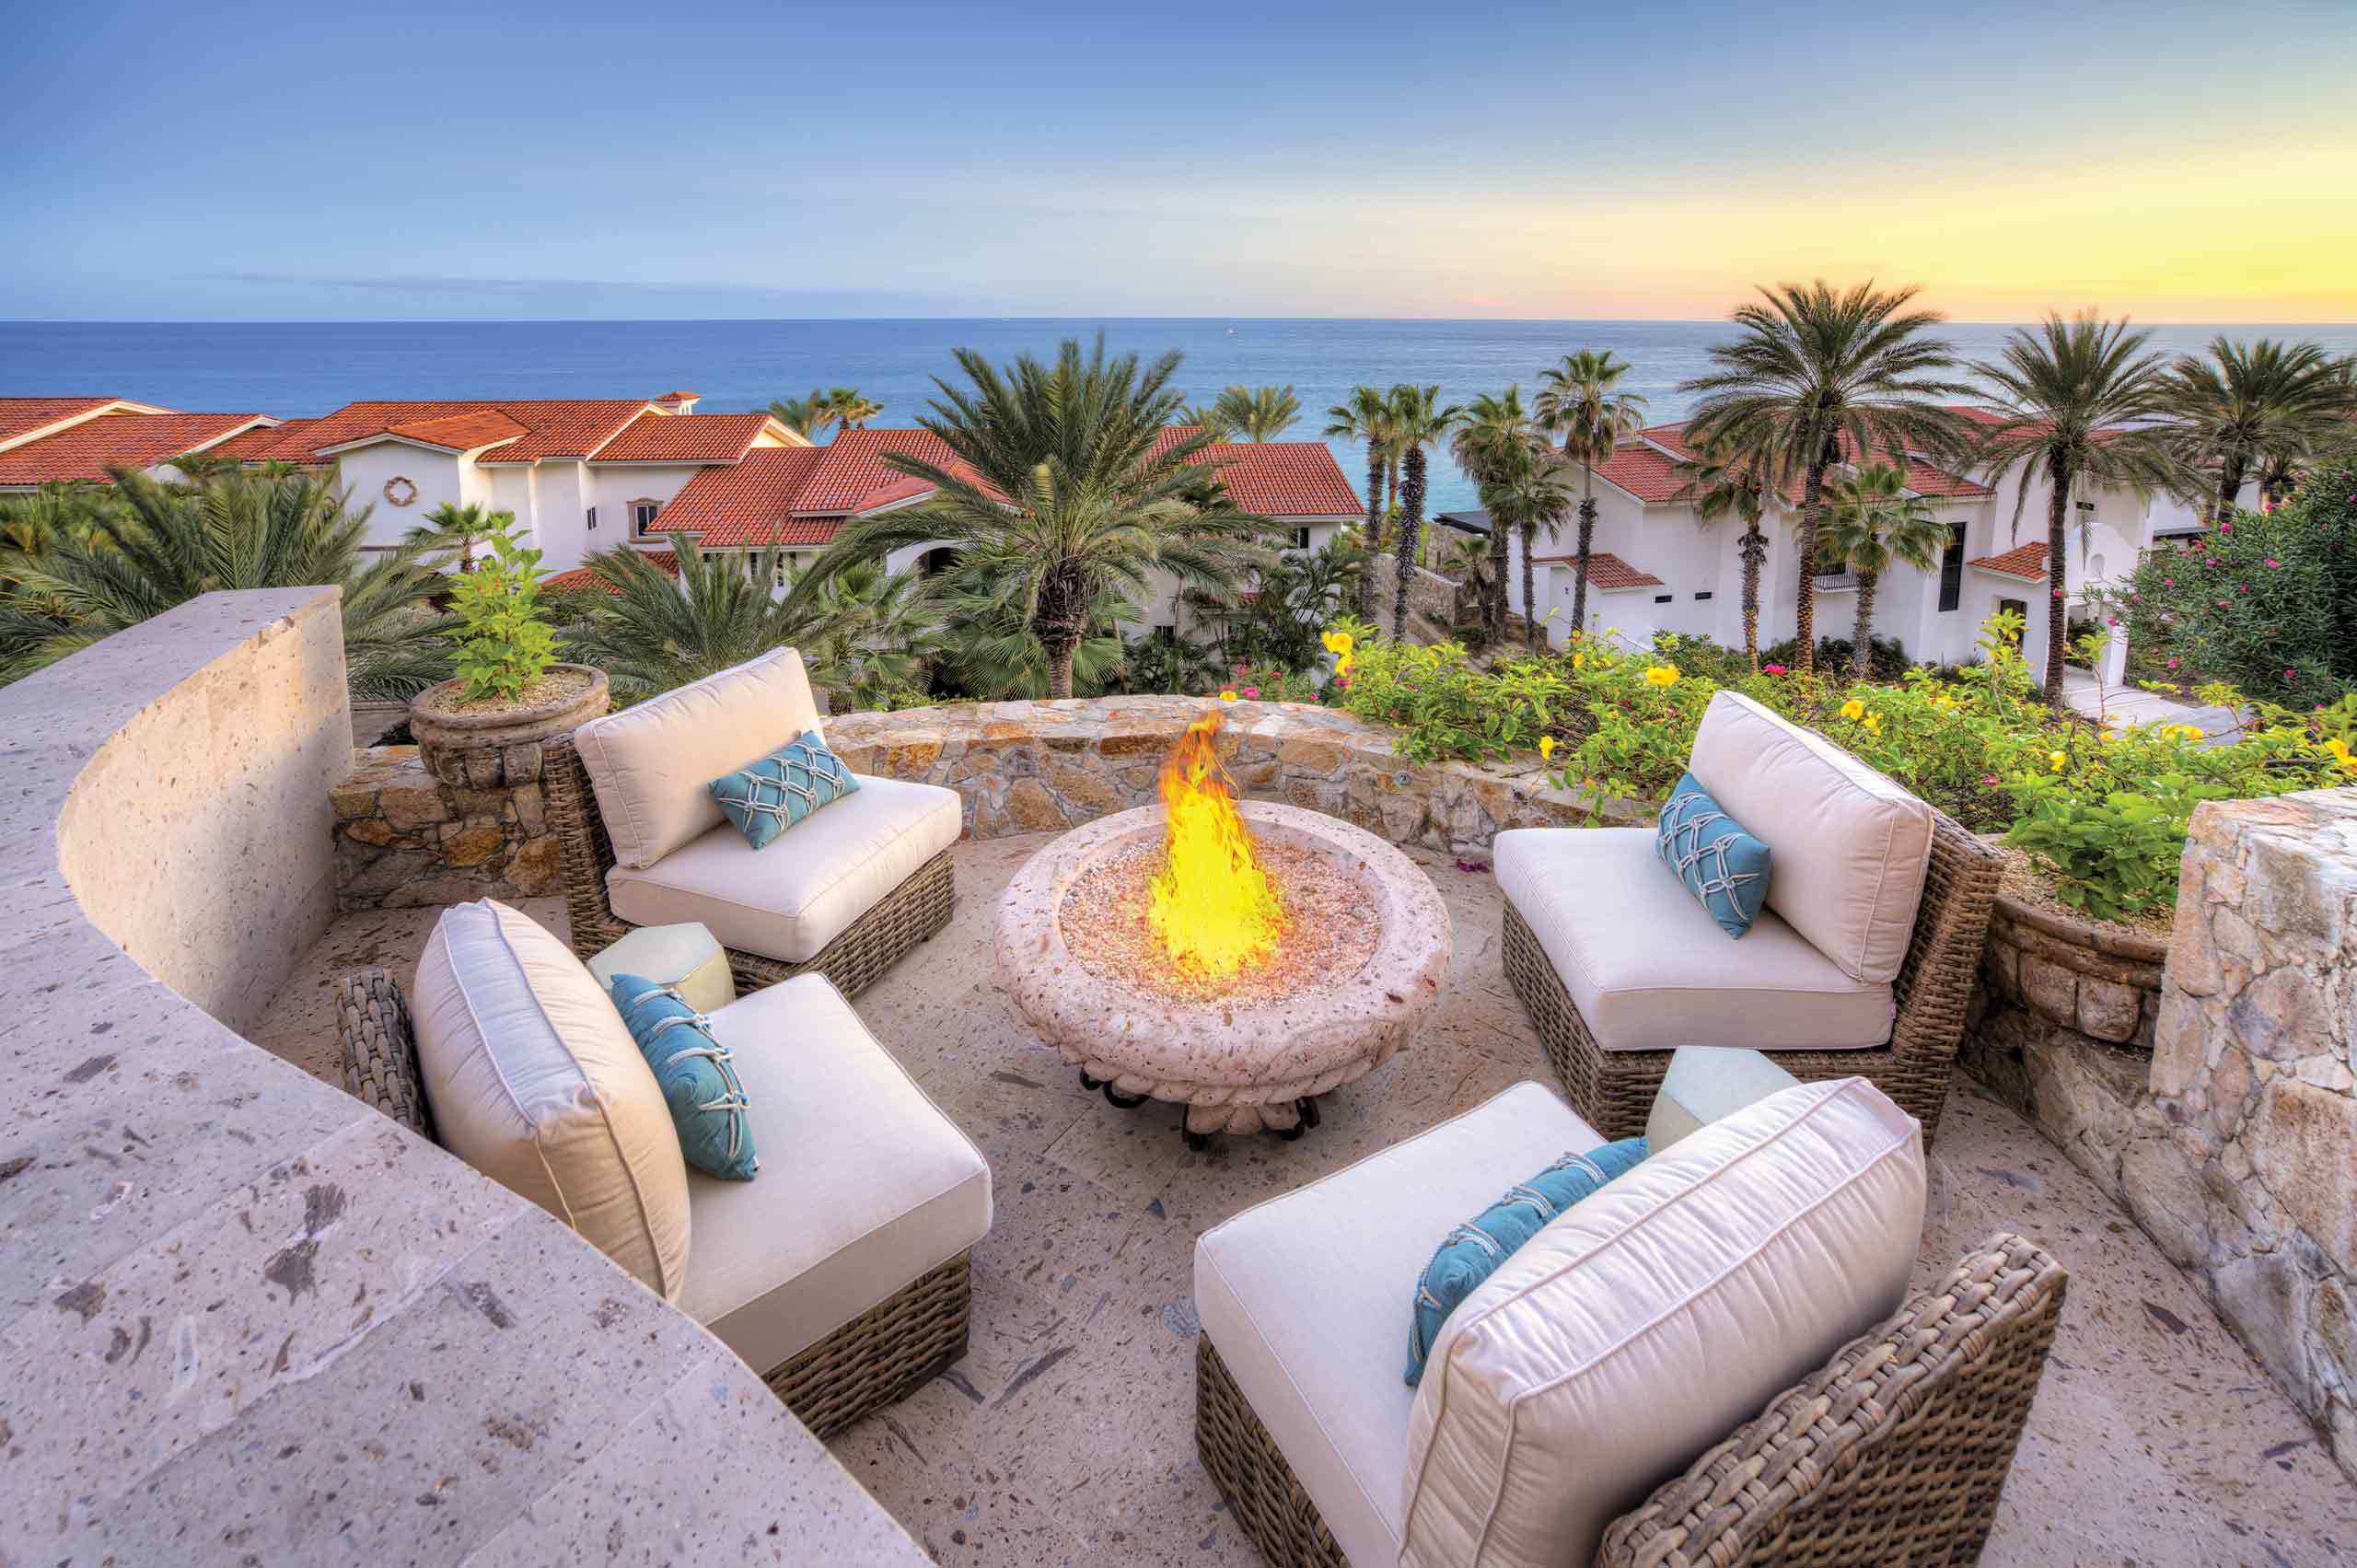 Luxury Family Vacation Cabo